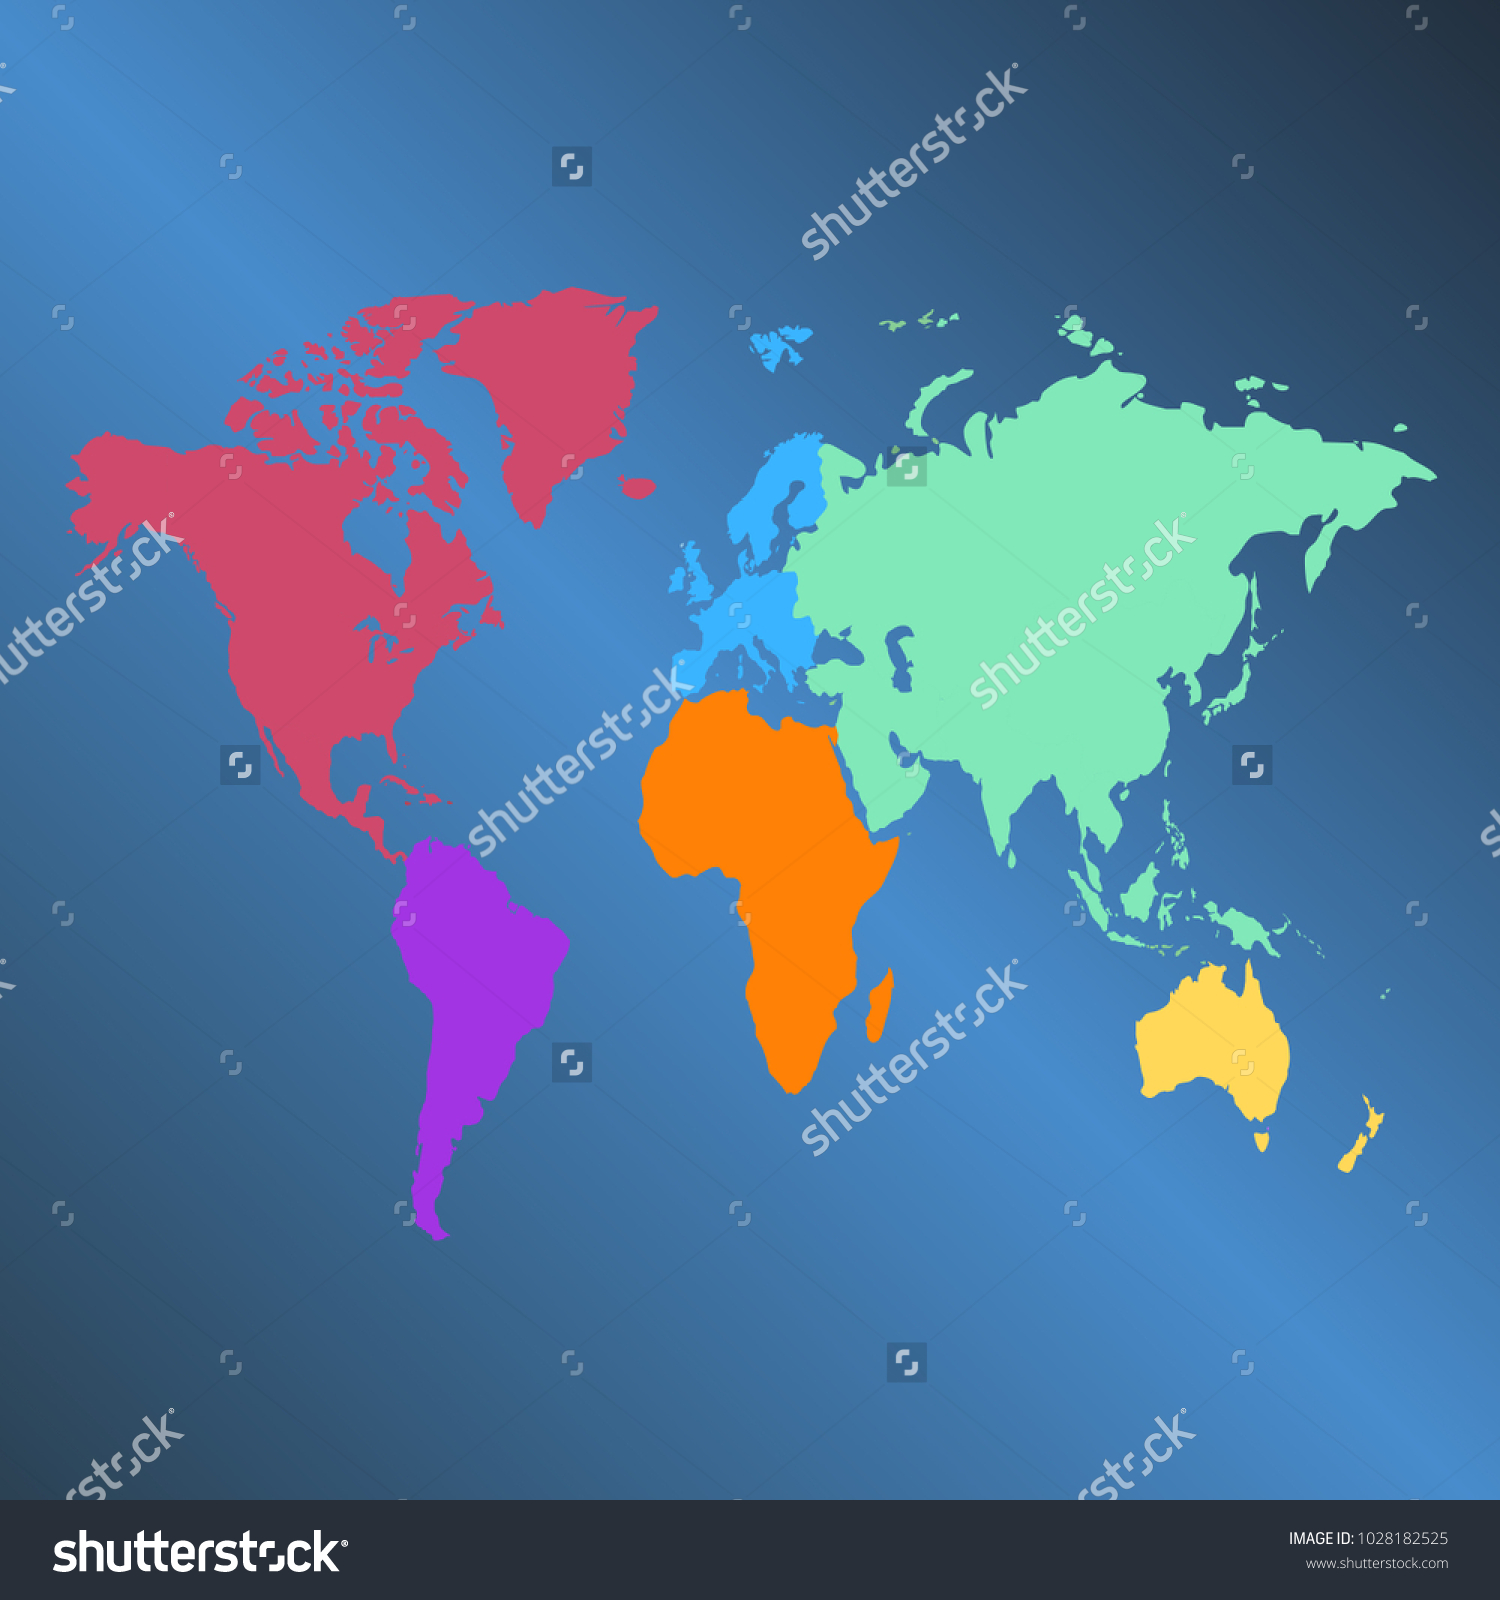 A map of europe and asia picture ideas references a map of europe and asia world map europe asia america africa australia gumiabroncs Gallery